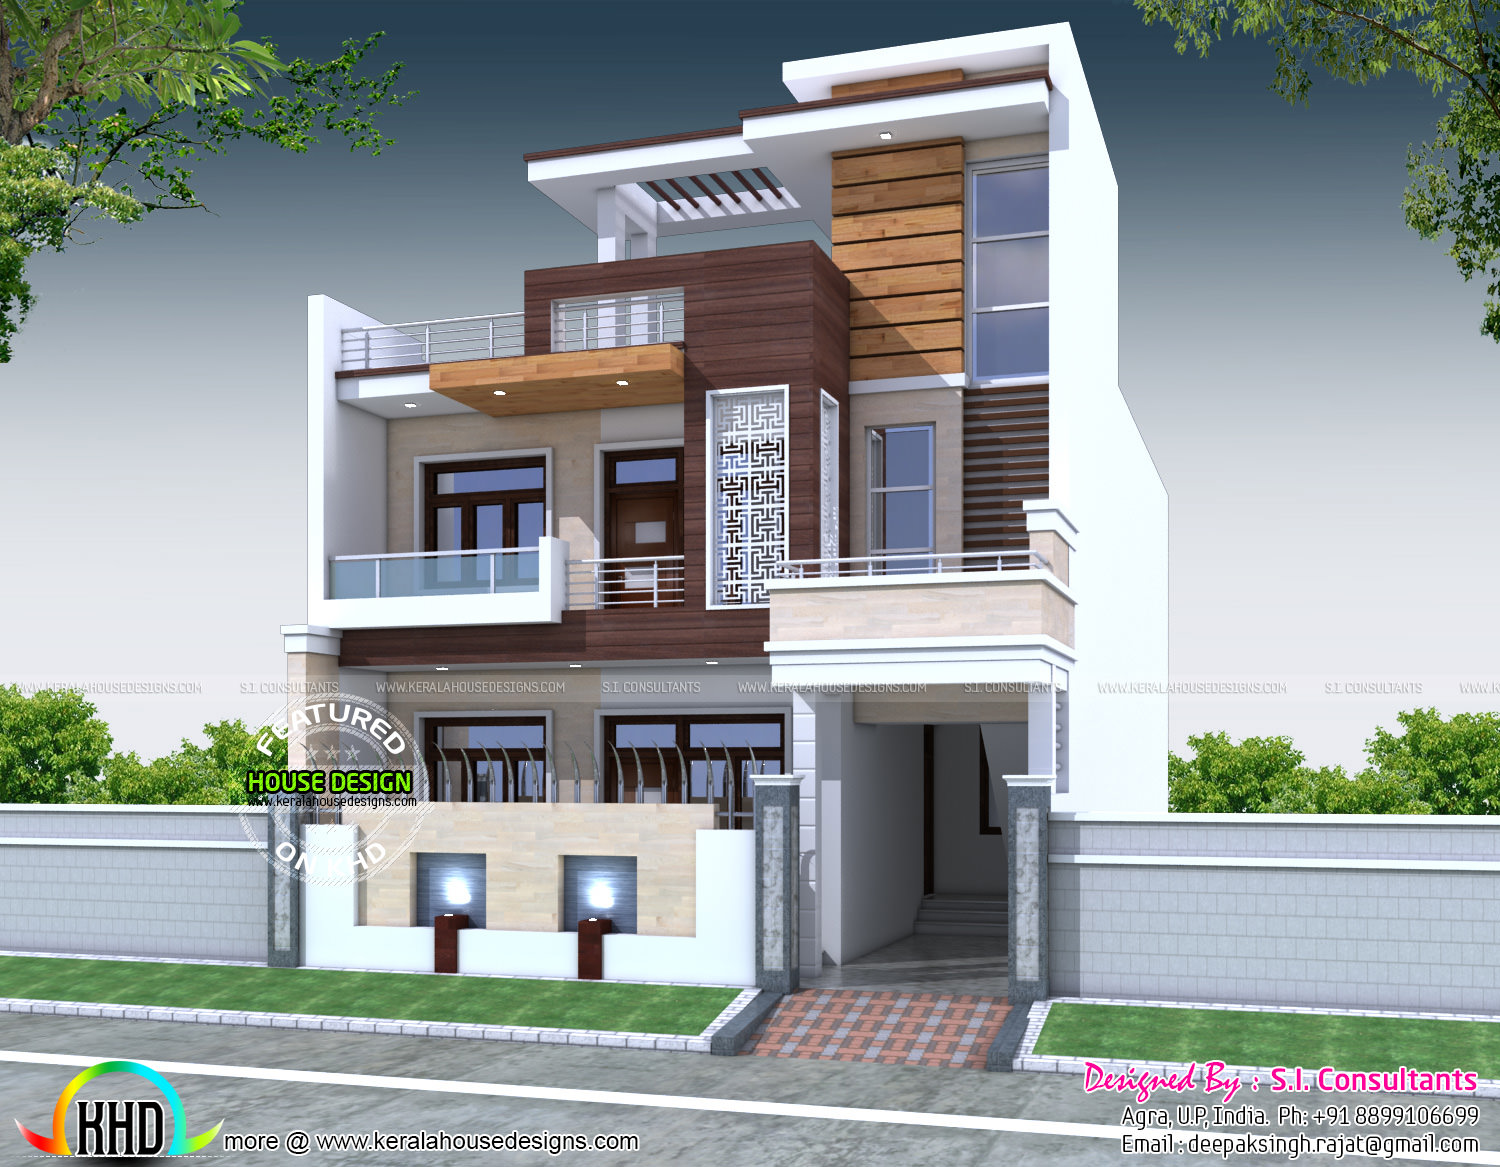 Decorative 5 bedroom house architecture kerala home for Latest modern home designs